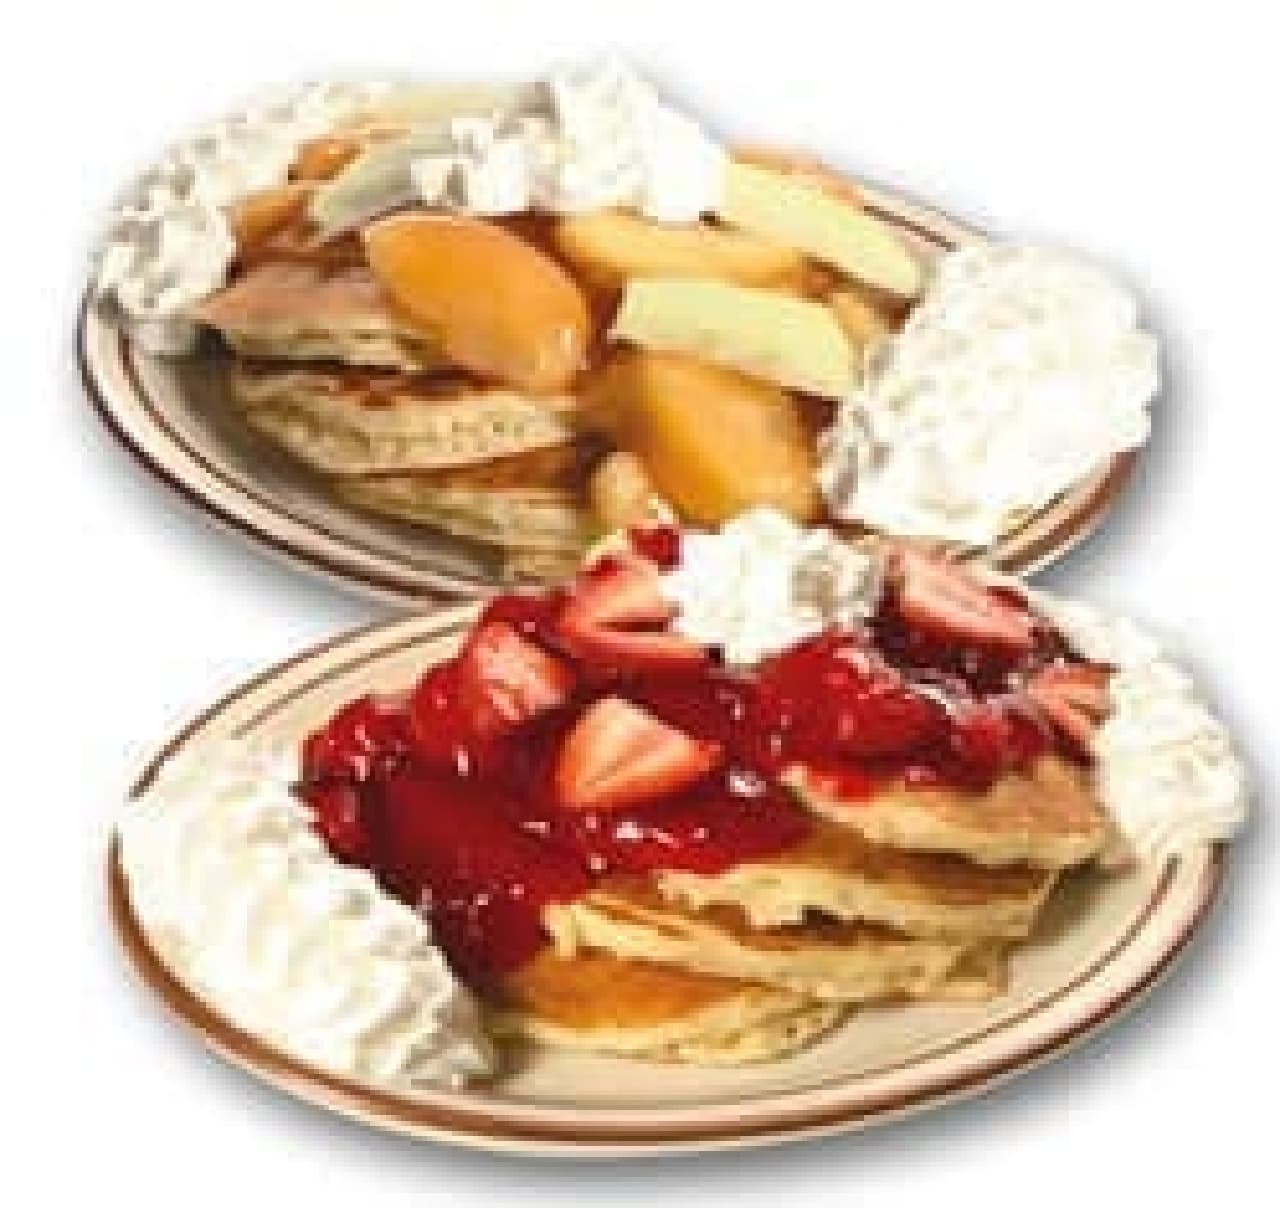 「Pancake Floor Pillows」が目指した Blueberry Hill のパンケーキ